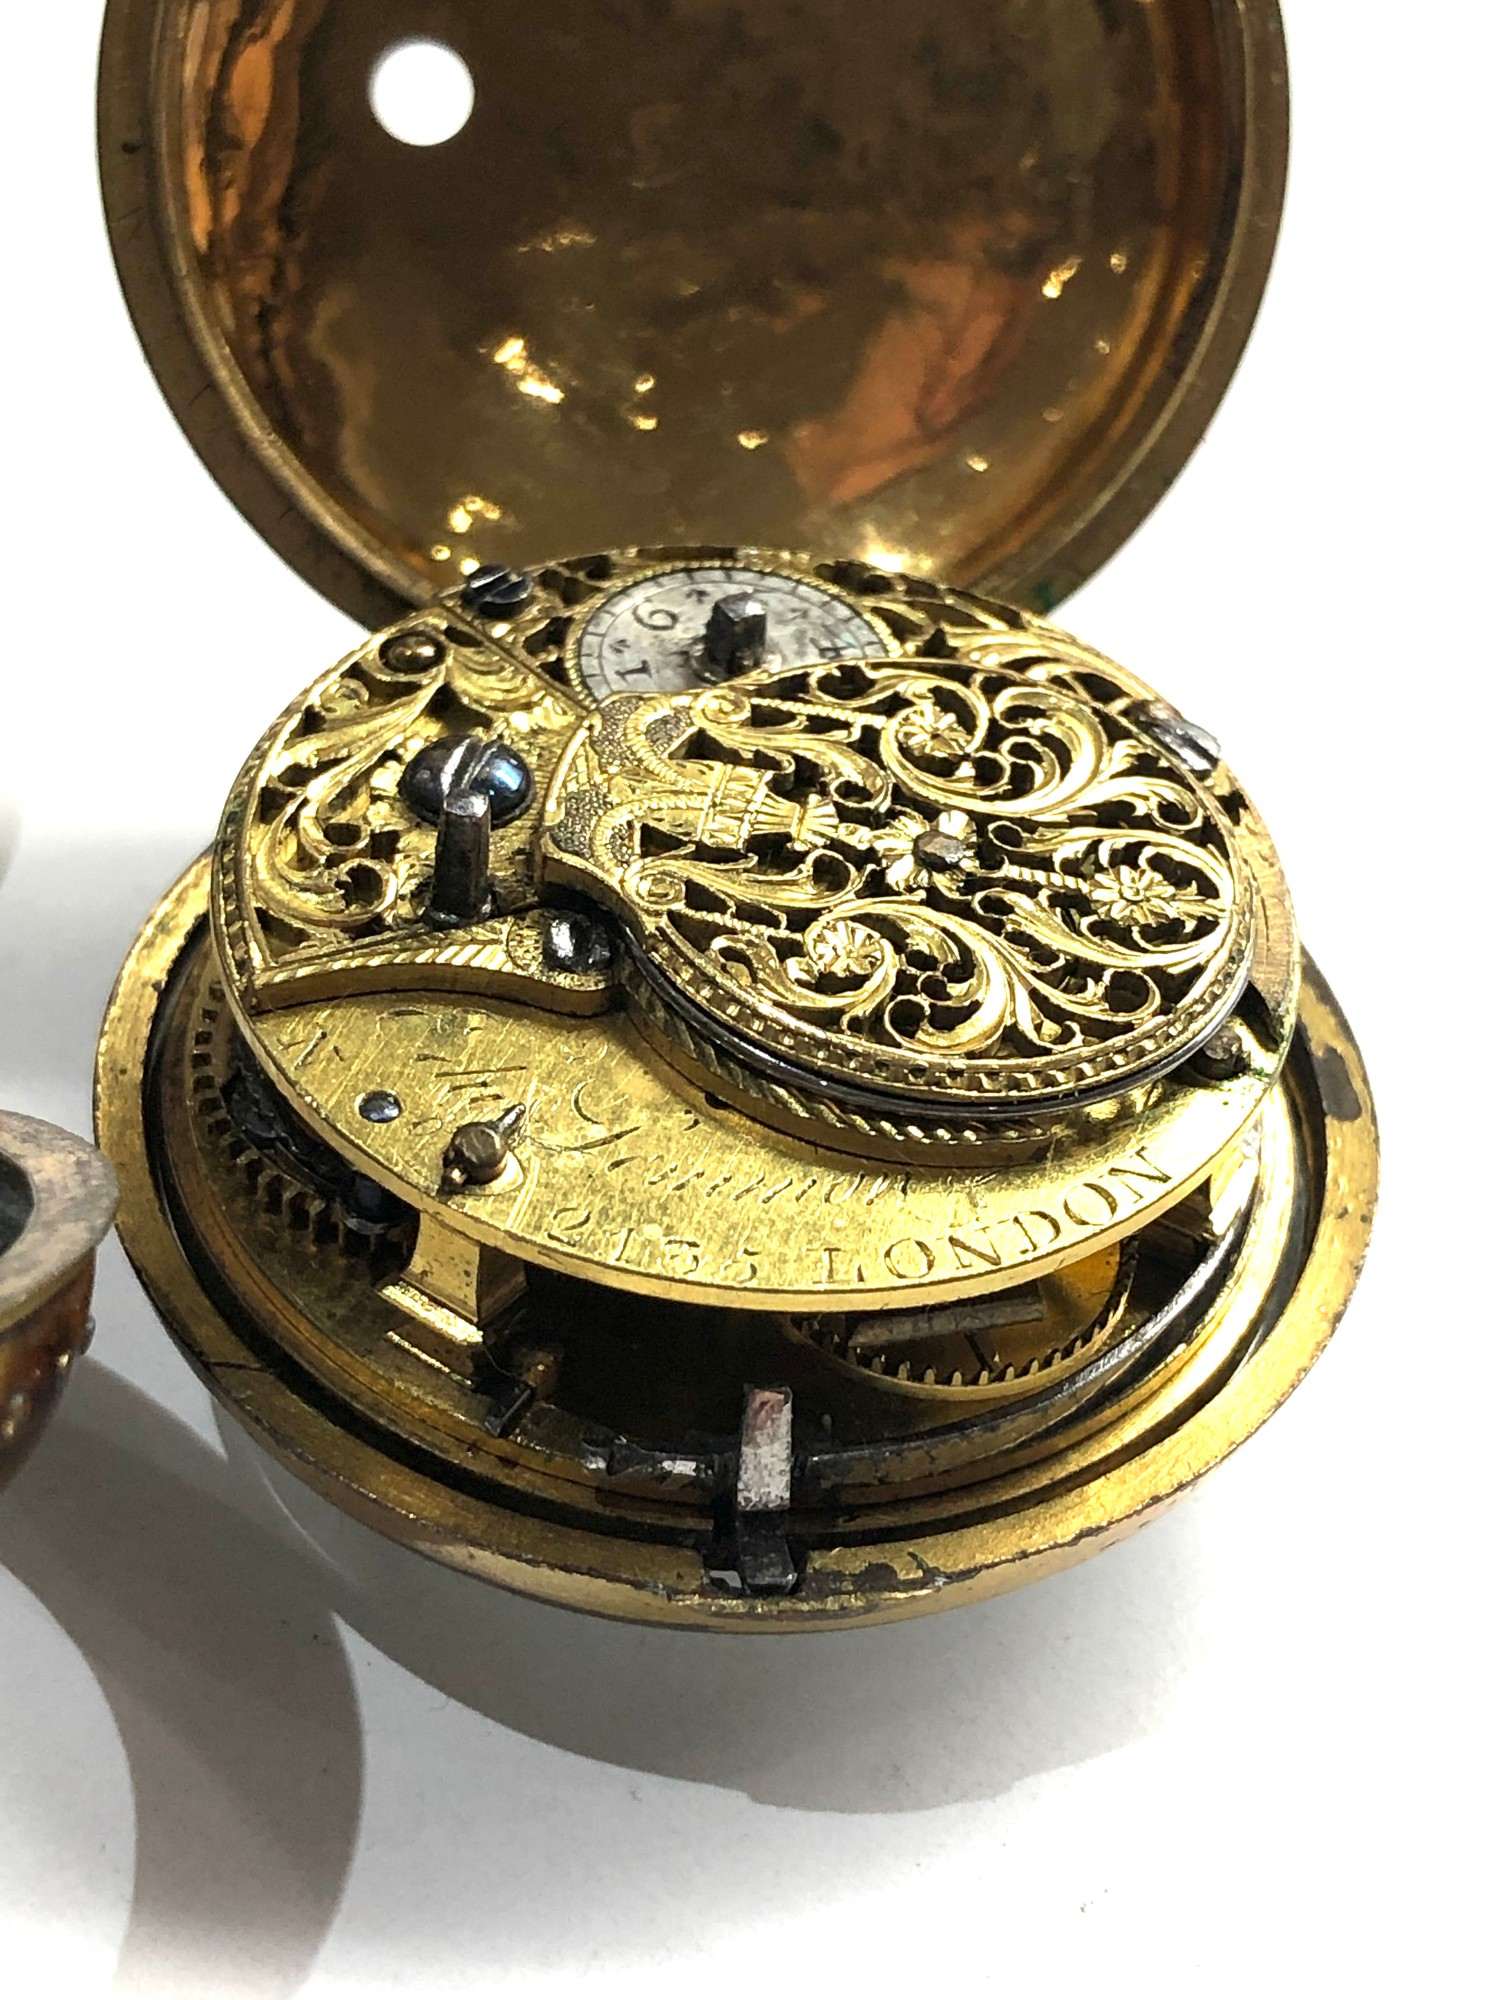 18th century London paircase verge pocket watch the watch does wind and tick dial damaged outer case - Image 2 of 9